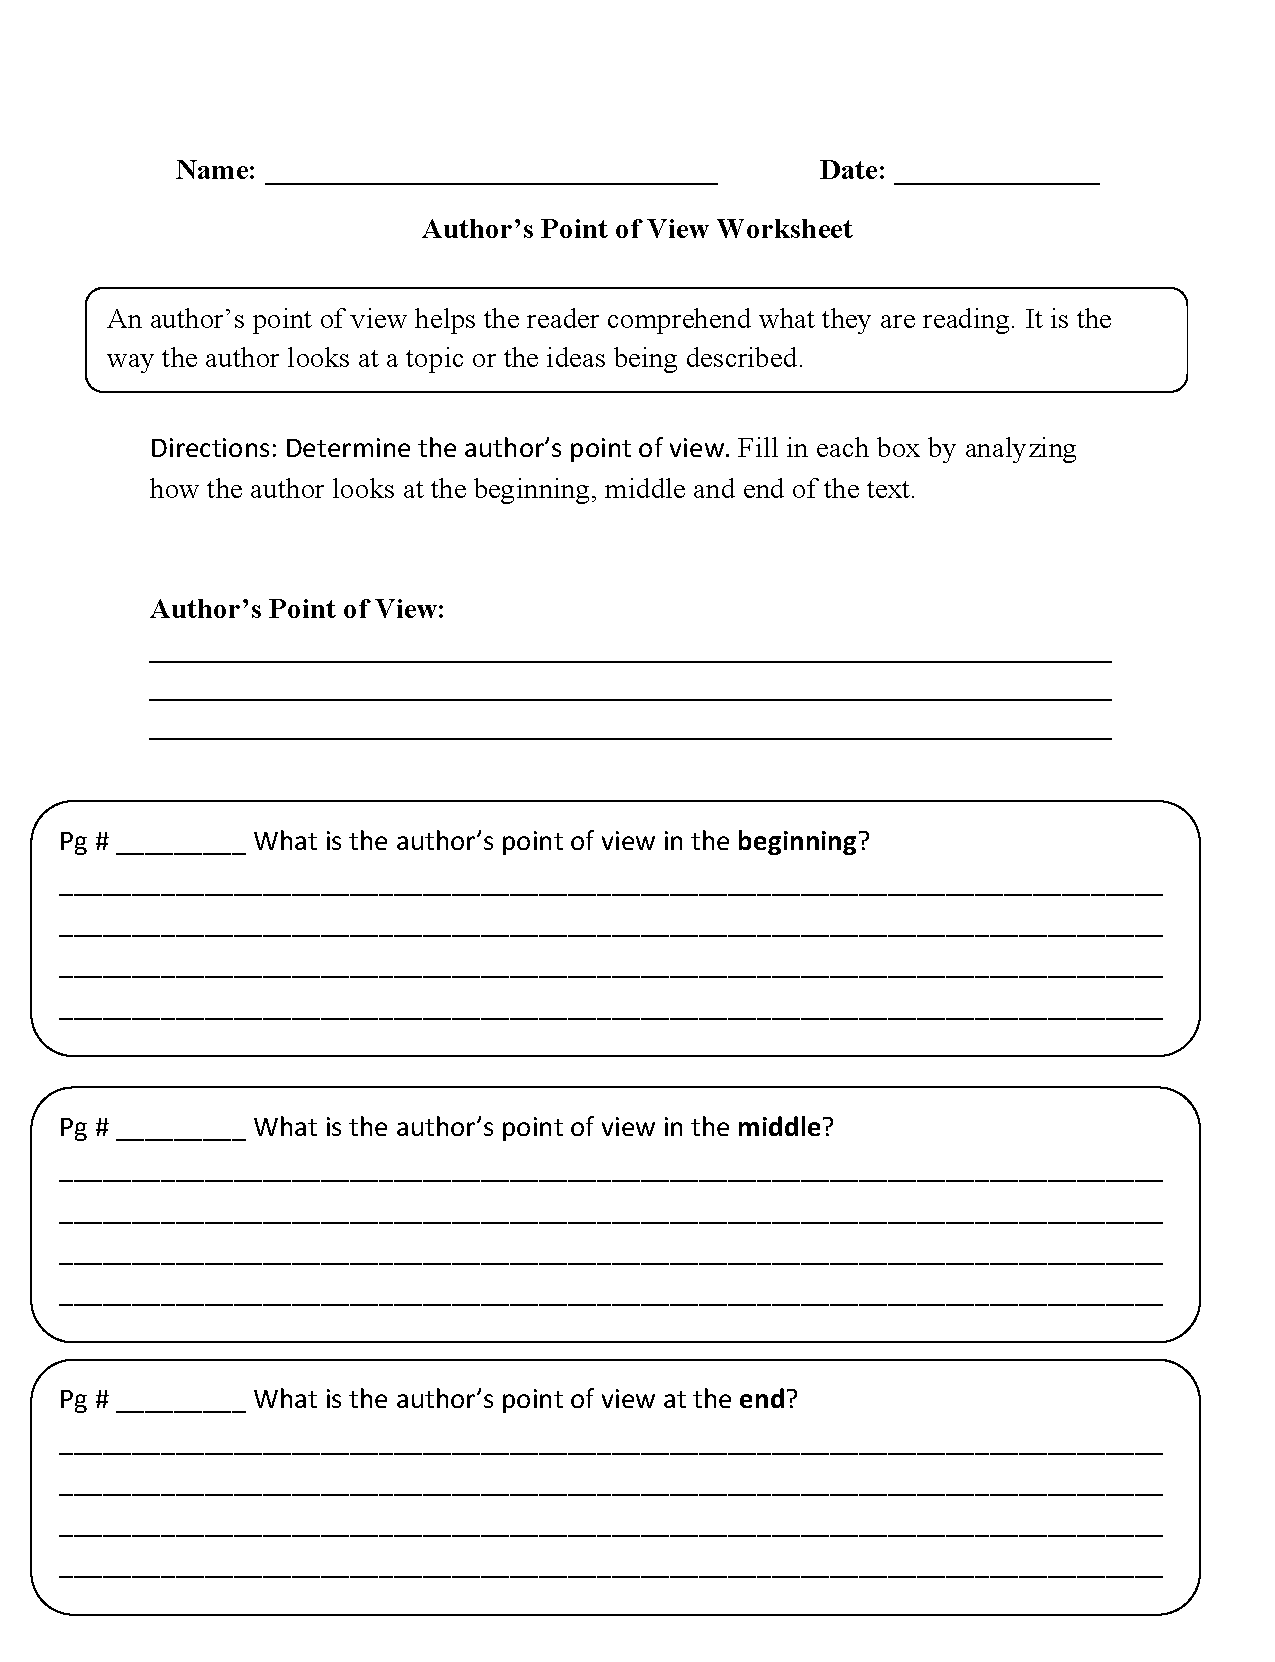 Weirdmailus  Unique Englishlinxcom  Point Of View Worksheets With Fascinating Point Of View Worksheets With Lovely Light Worksheet Wavelength Frequency And Energy Also Number Writing Worksheets In Addition Commutative Property Of Addition Worksheets And Ionic And Covalent Bonds Worksheet As Well As Gibbs Free Energy Worksheet Additionally Earths Spheres Worksheet From Englishlinxcom With Weirdmailus  Fascinating Englishlinxcom  Point Of View Worksheets With Lovely Point Of View Worksheets And Unique Light Worksheet Wavelength Frequency And Energy Also Number Writing Worksheets In Addition Commutative Property Of Addition Worksheets From Englishlinxcom